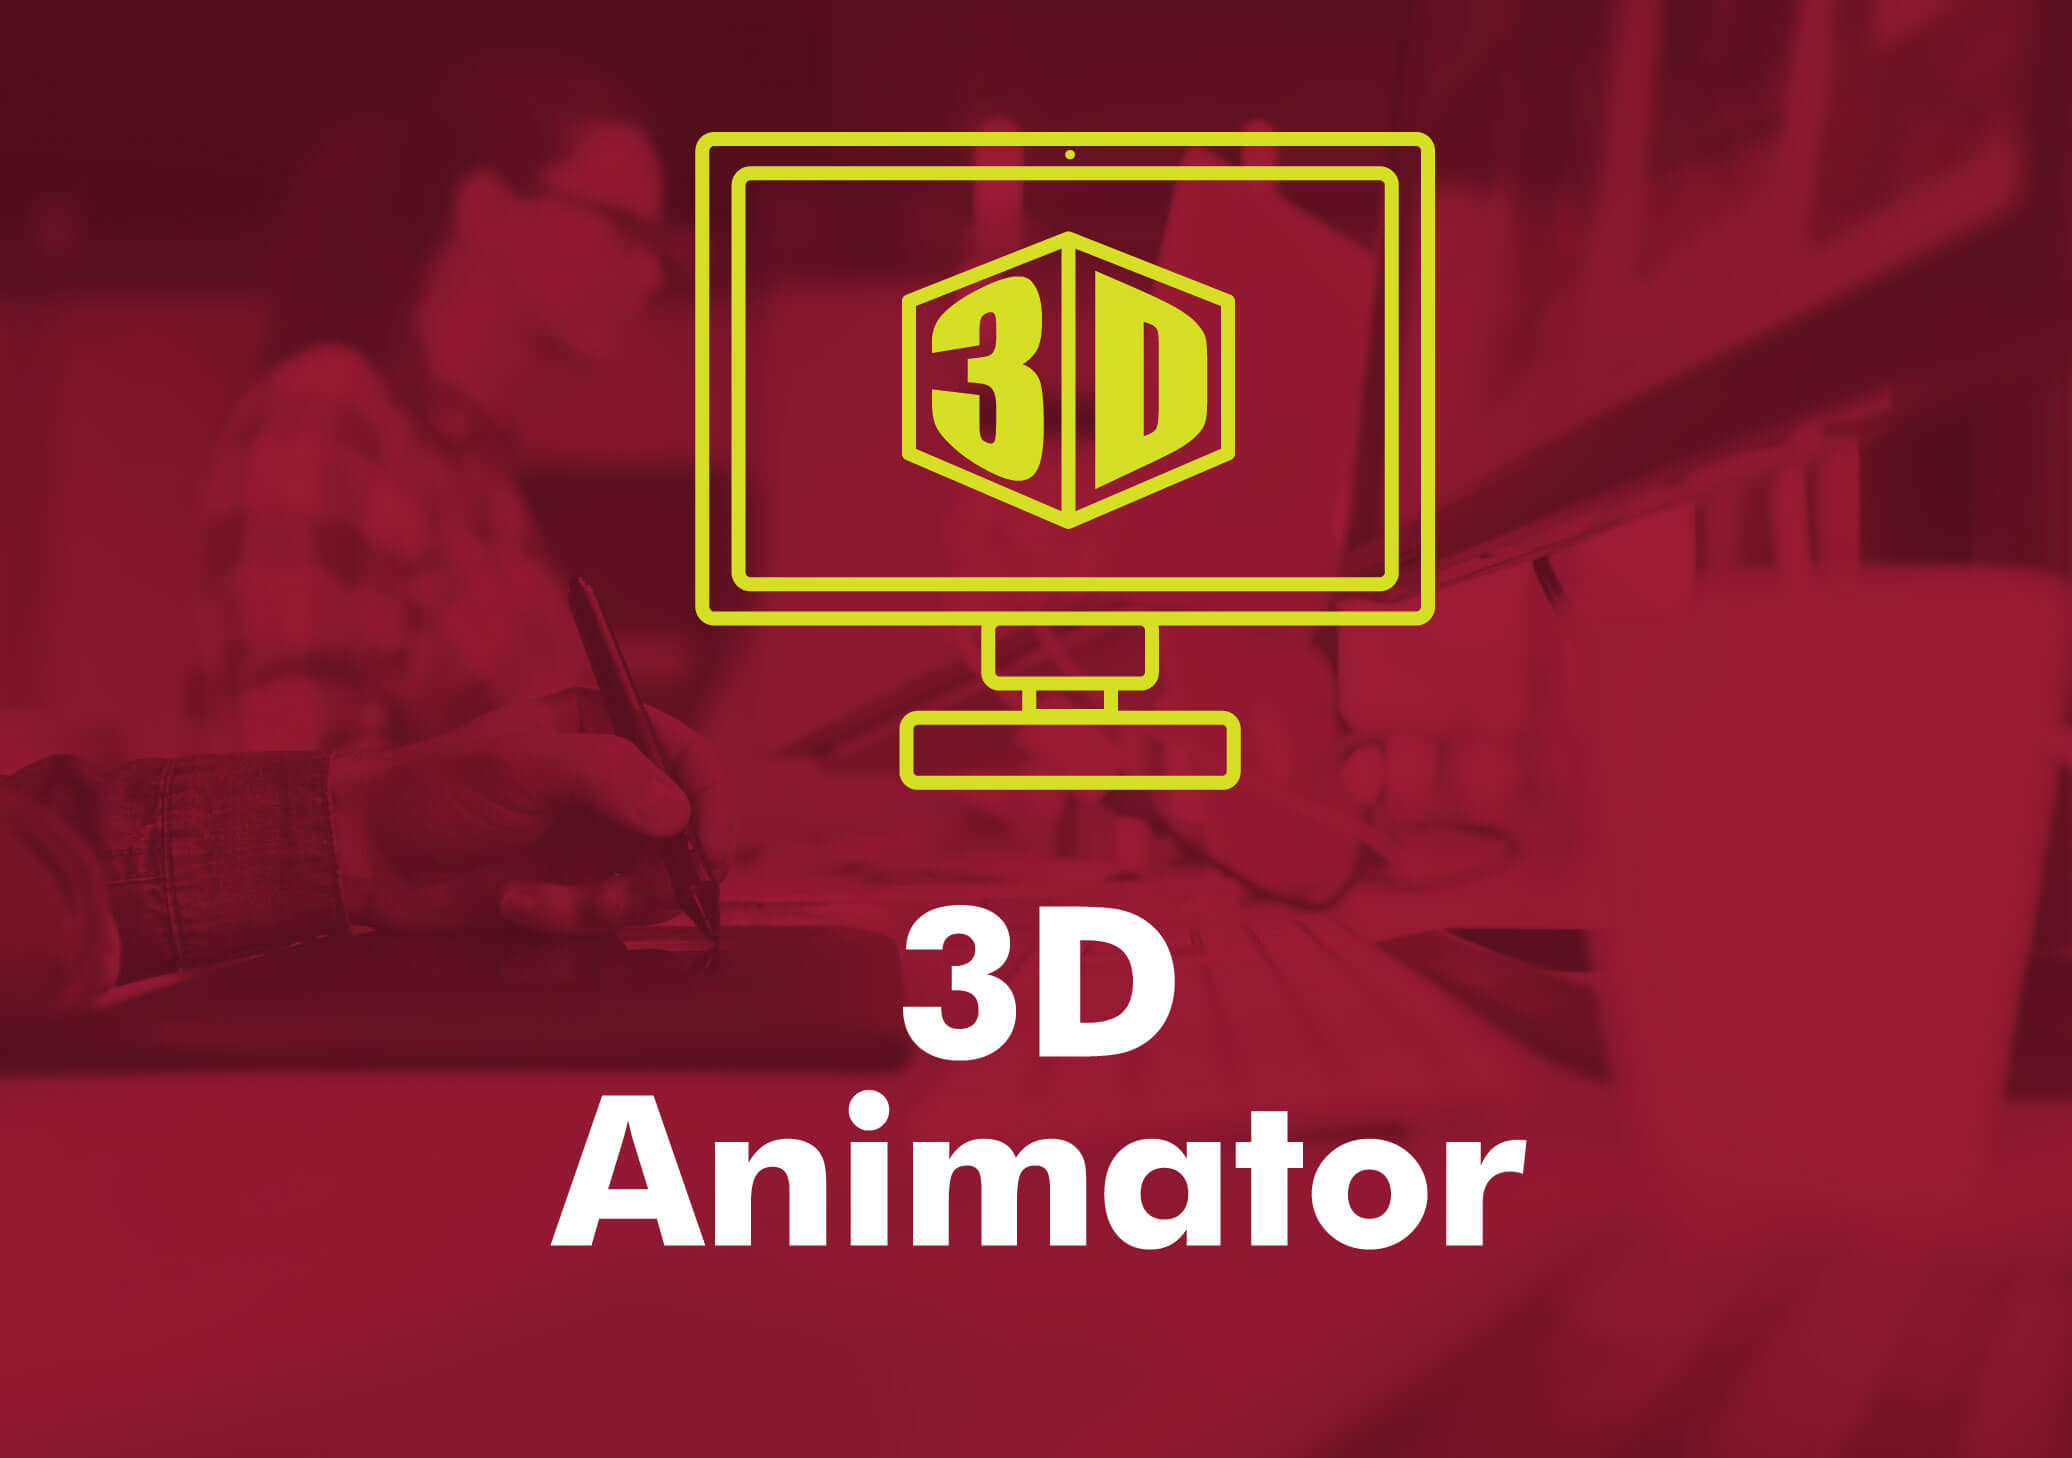 3d animator salary and job description